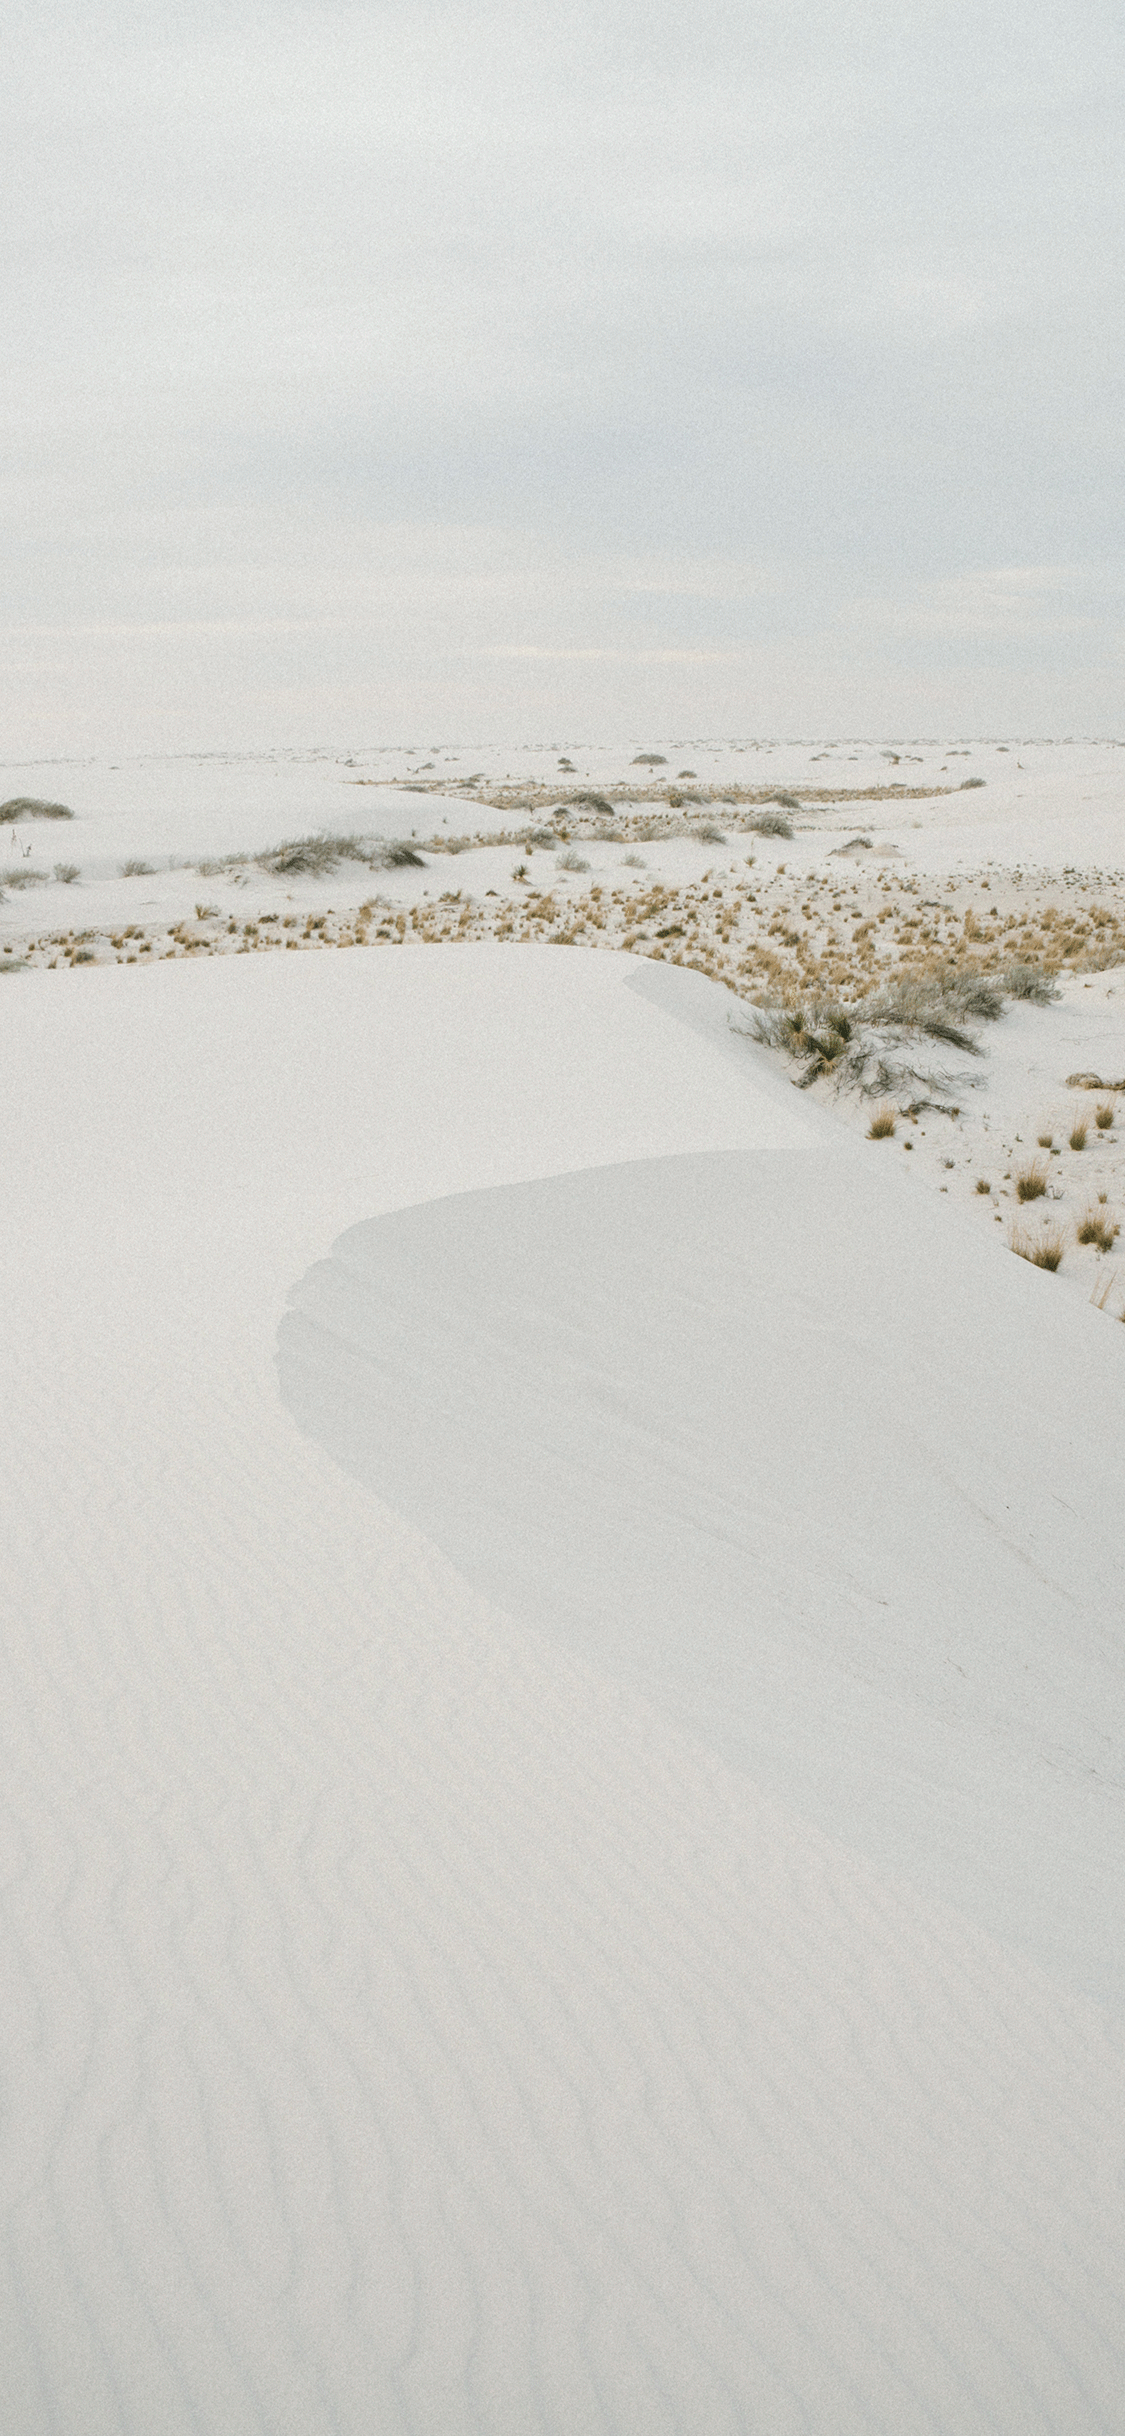 iPhone wallpaper desert white sands Fonds d'écran iPhone du 30/08/2018